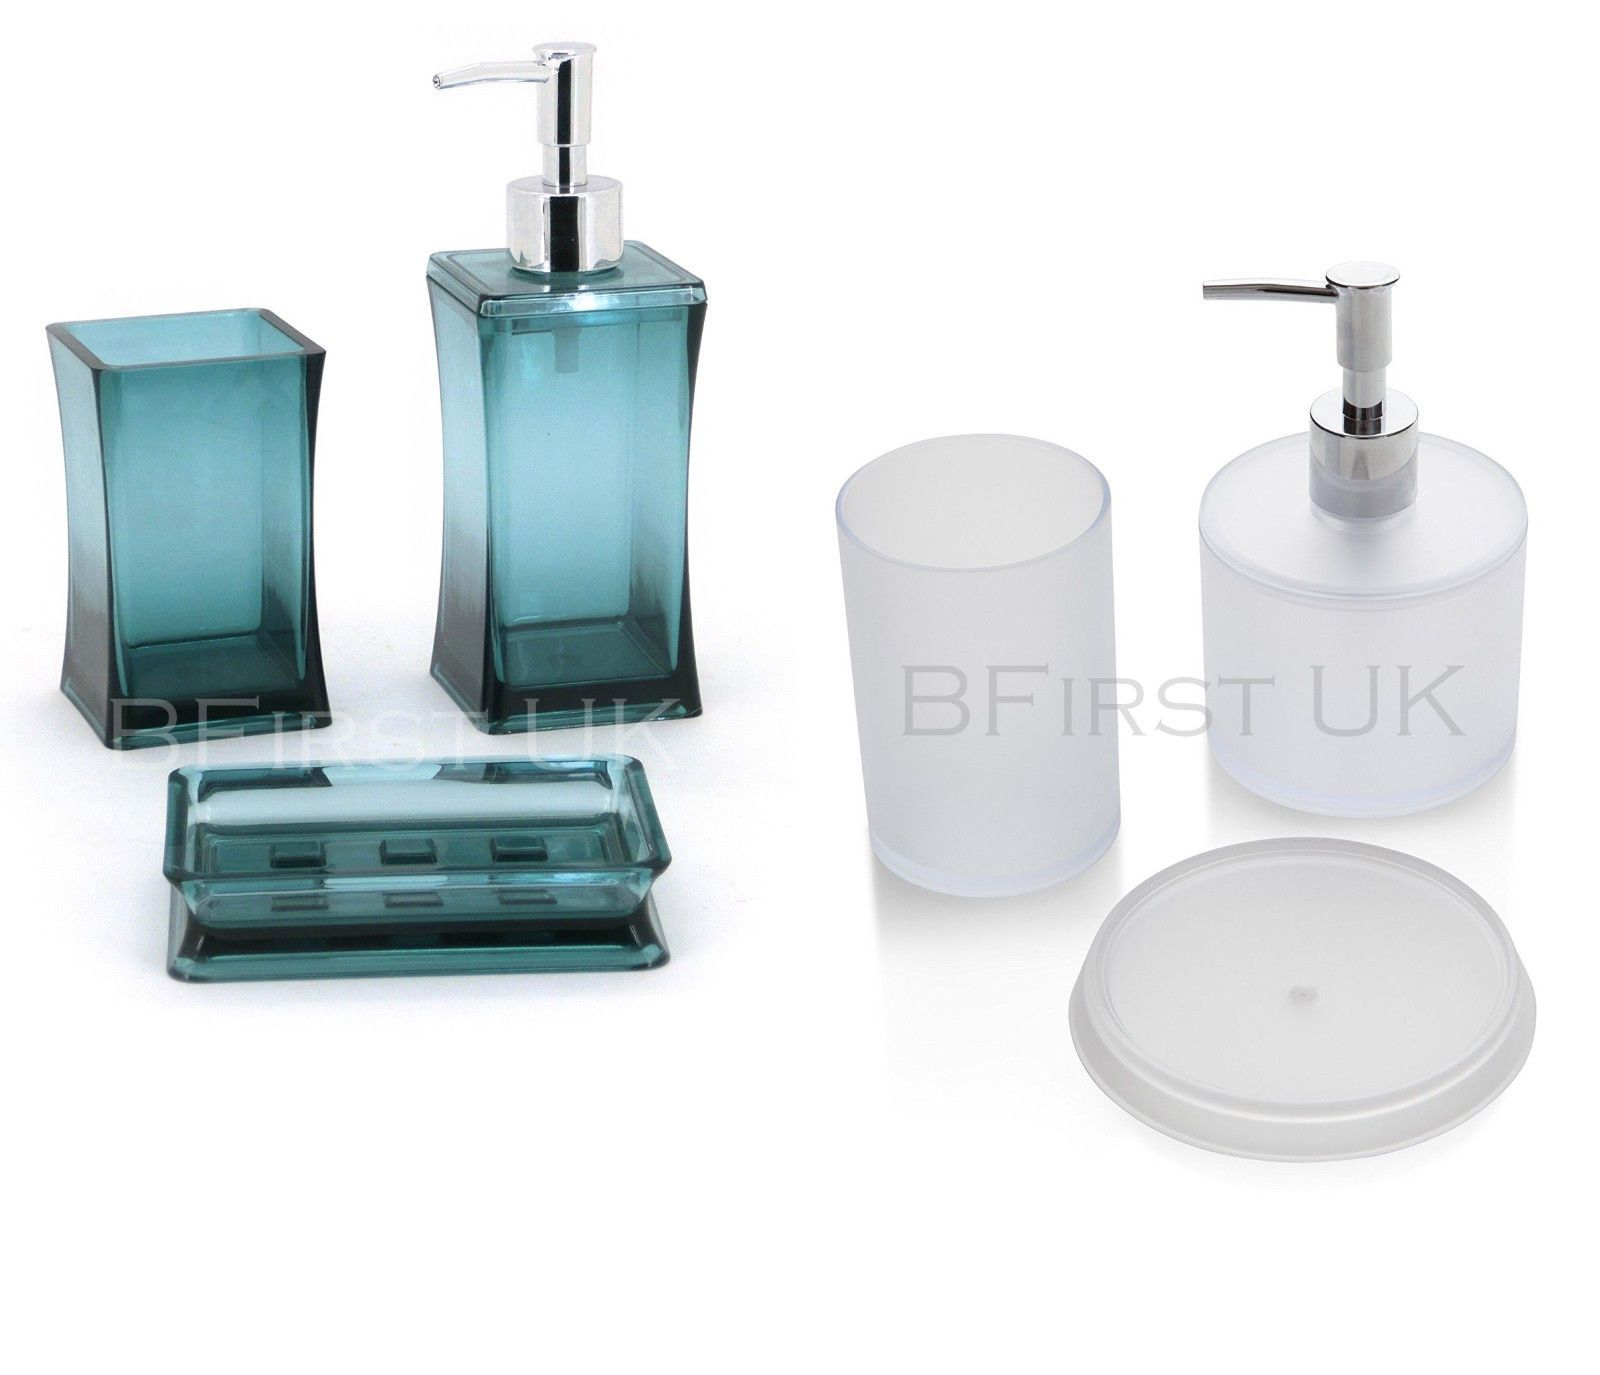 3Pc Roundsquare Bathroom #glass #chrome #accessory Set Tumbler Pleasing Chrome Bathroom Accessories Inspiration